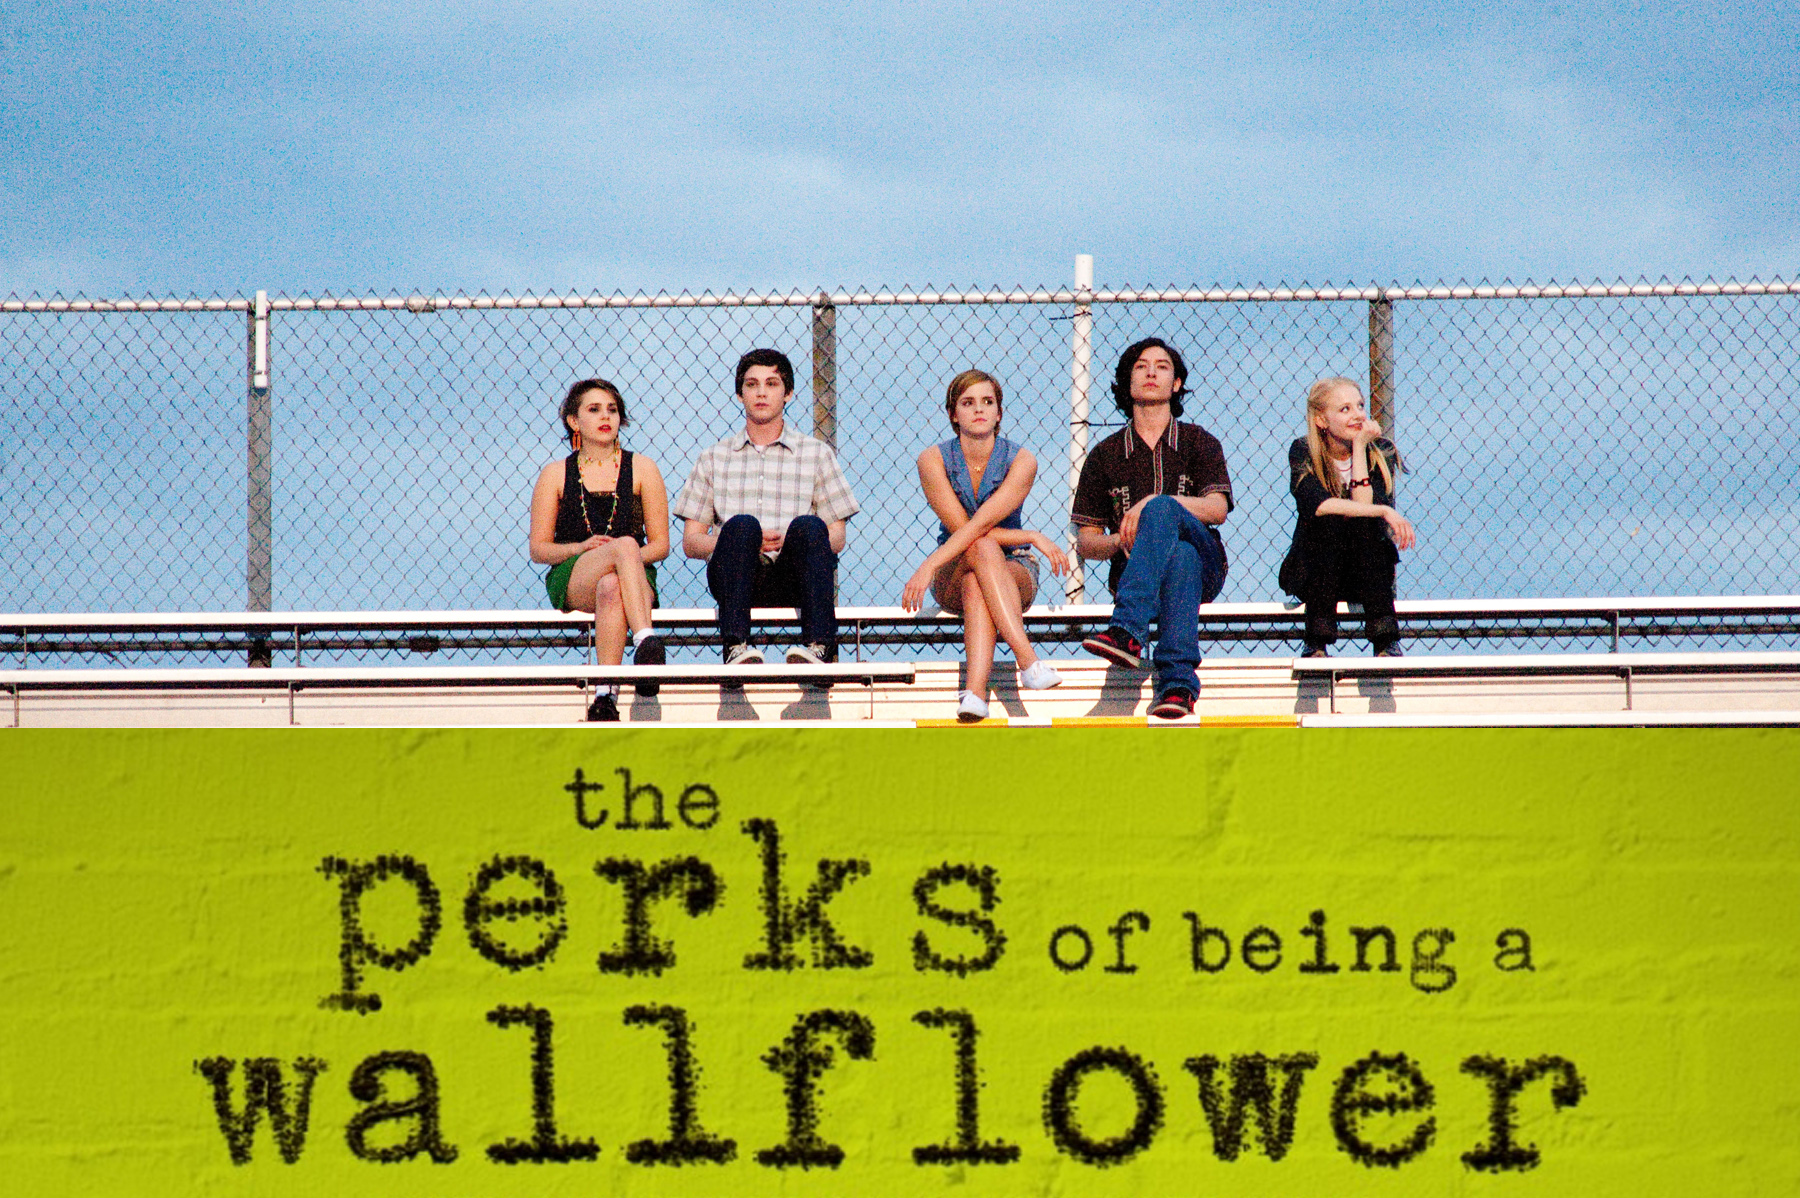 THE PERKS OF BEING A WALLFLOWER Source : http://trauma.blog.yorku.ca/ Ph: John Bramley © 2011 Summit Entertainment, LLC.  All rights reserved.